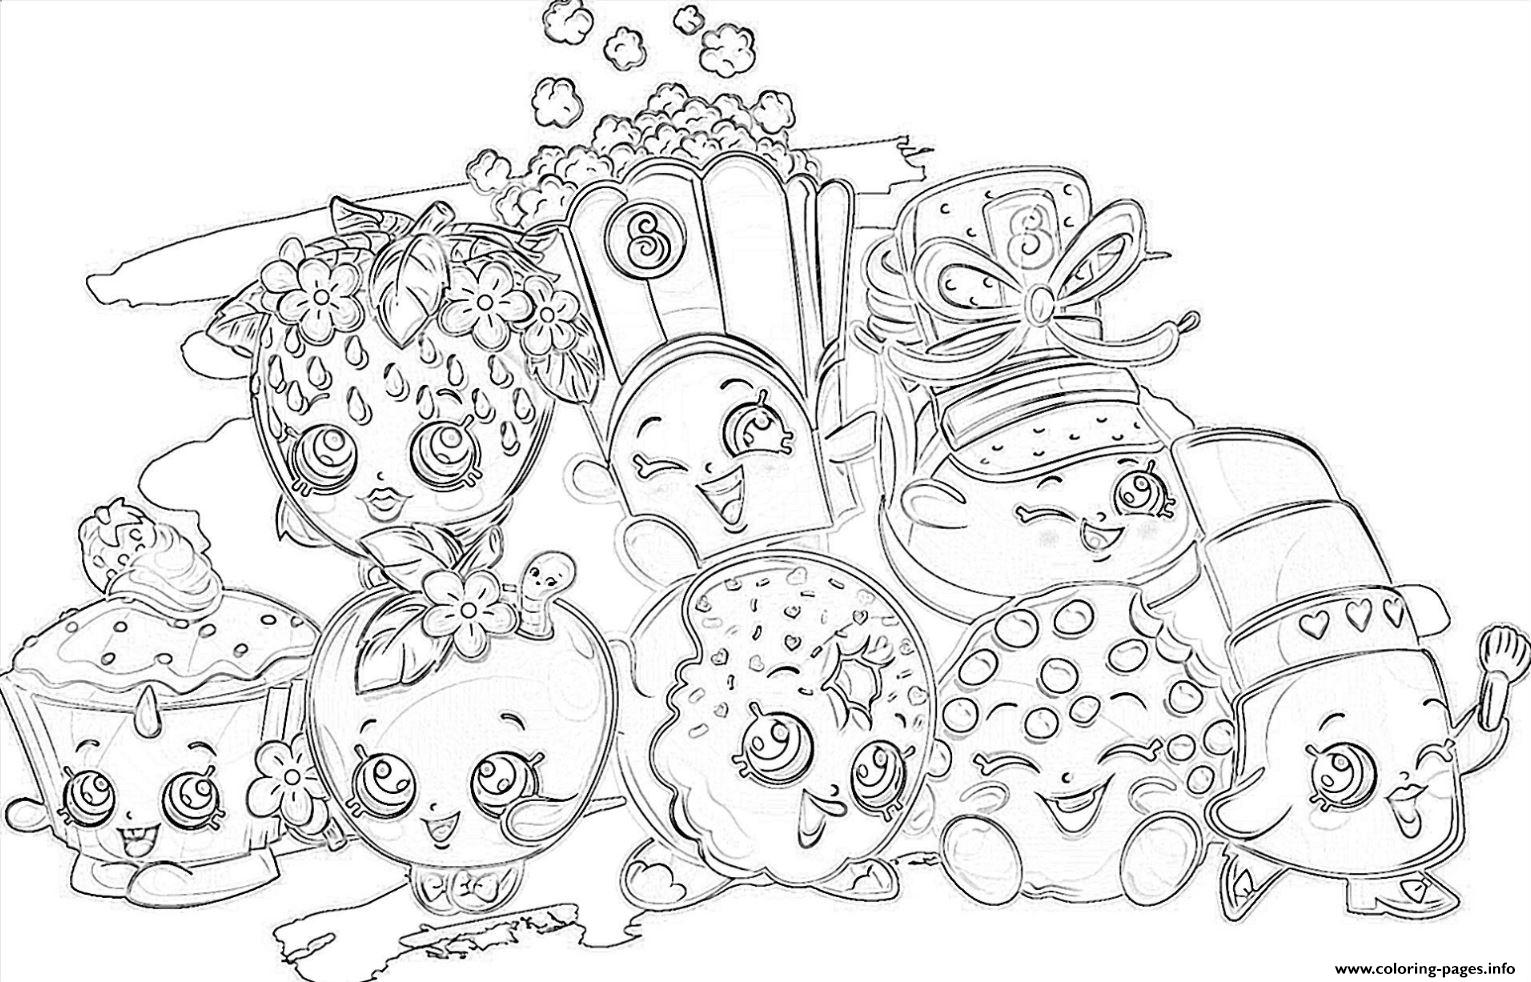 Shopkins coloring pages to print out - Shopkins Coloring Pages To Print Out 22